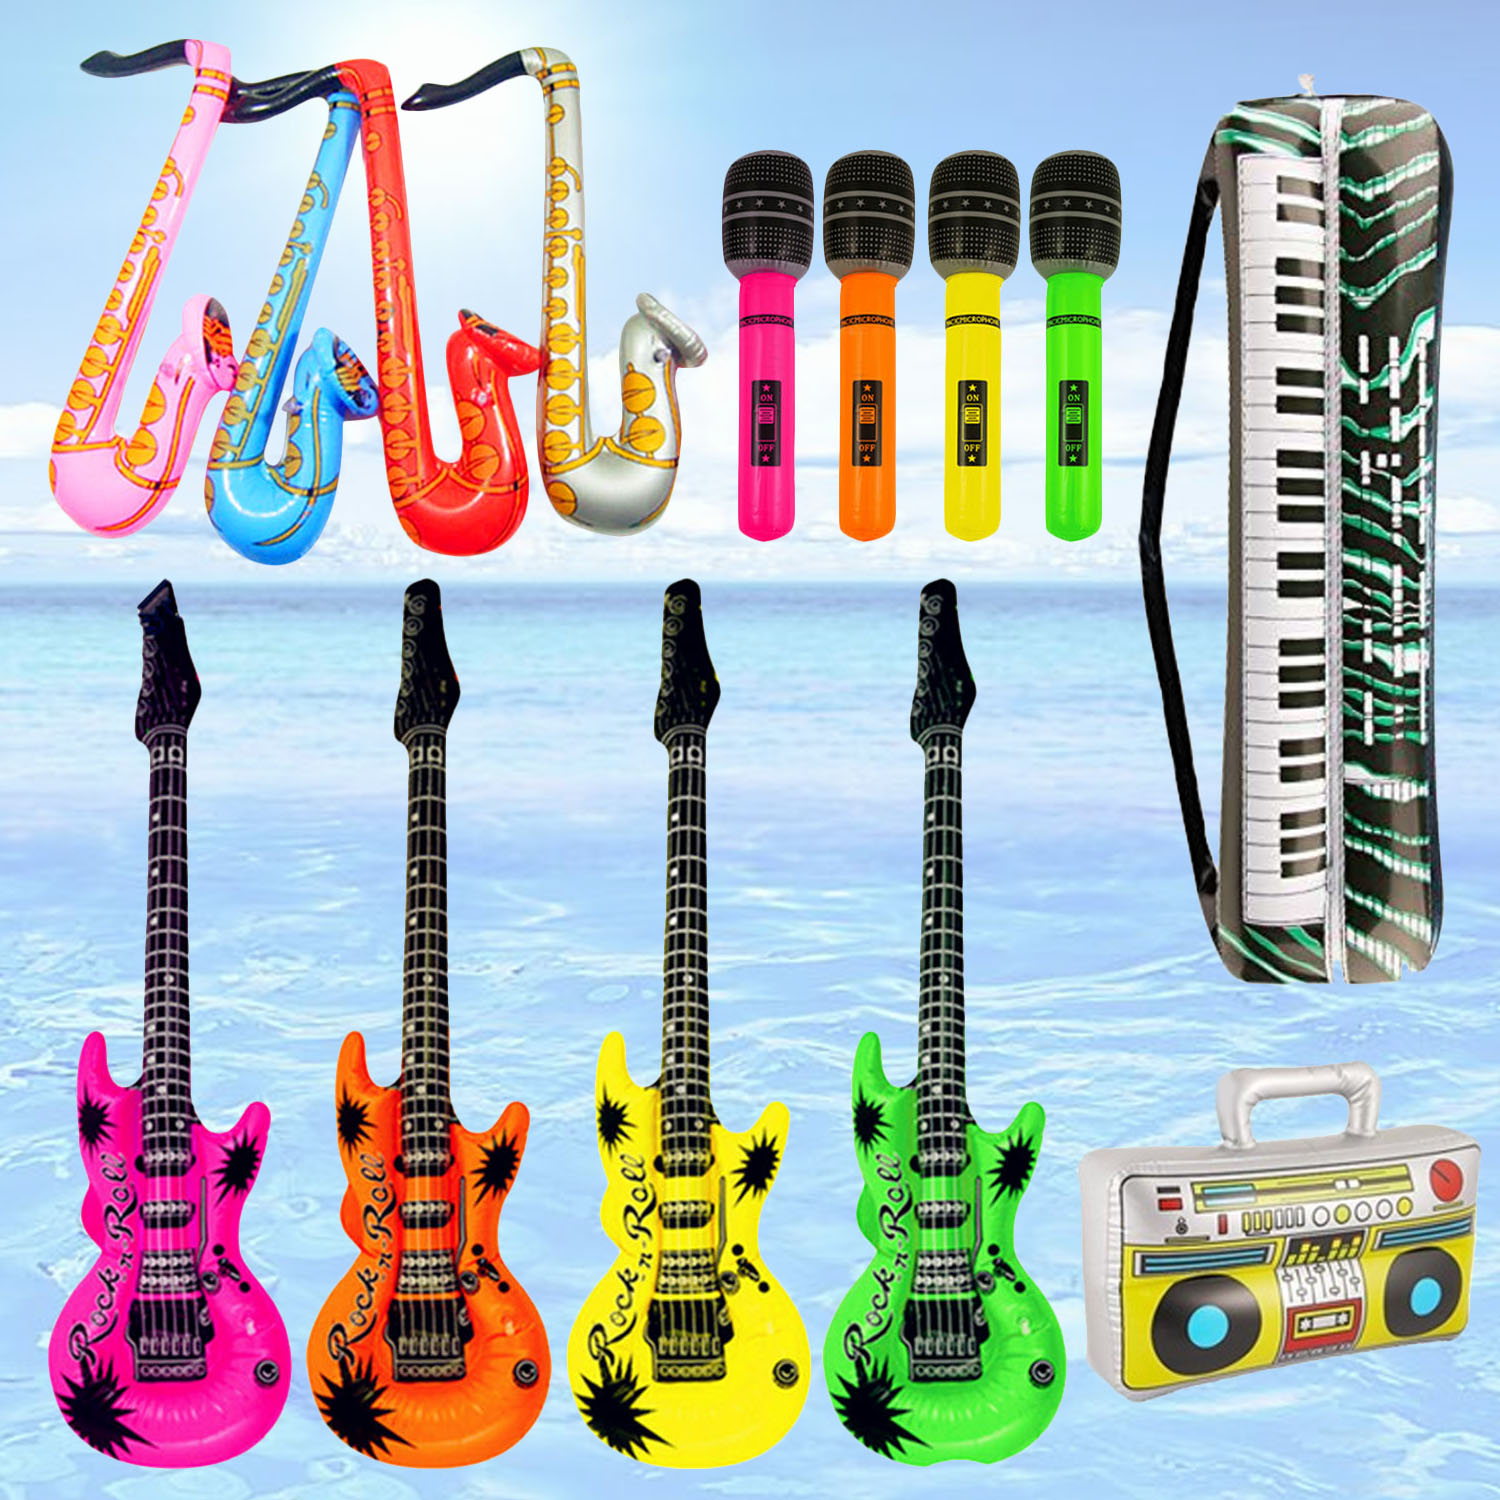 14cps Inflatables Music Guitar Saxophone Microphone Musical Instruments Balloons Toys Decorative Accessories For Swimming Pool